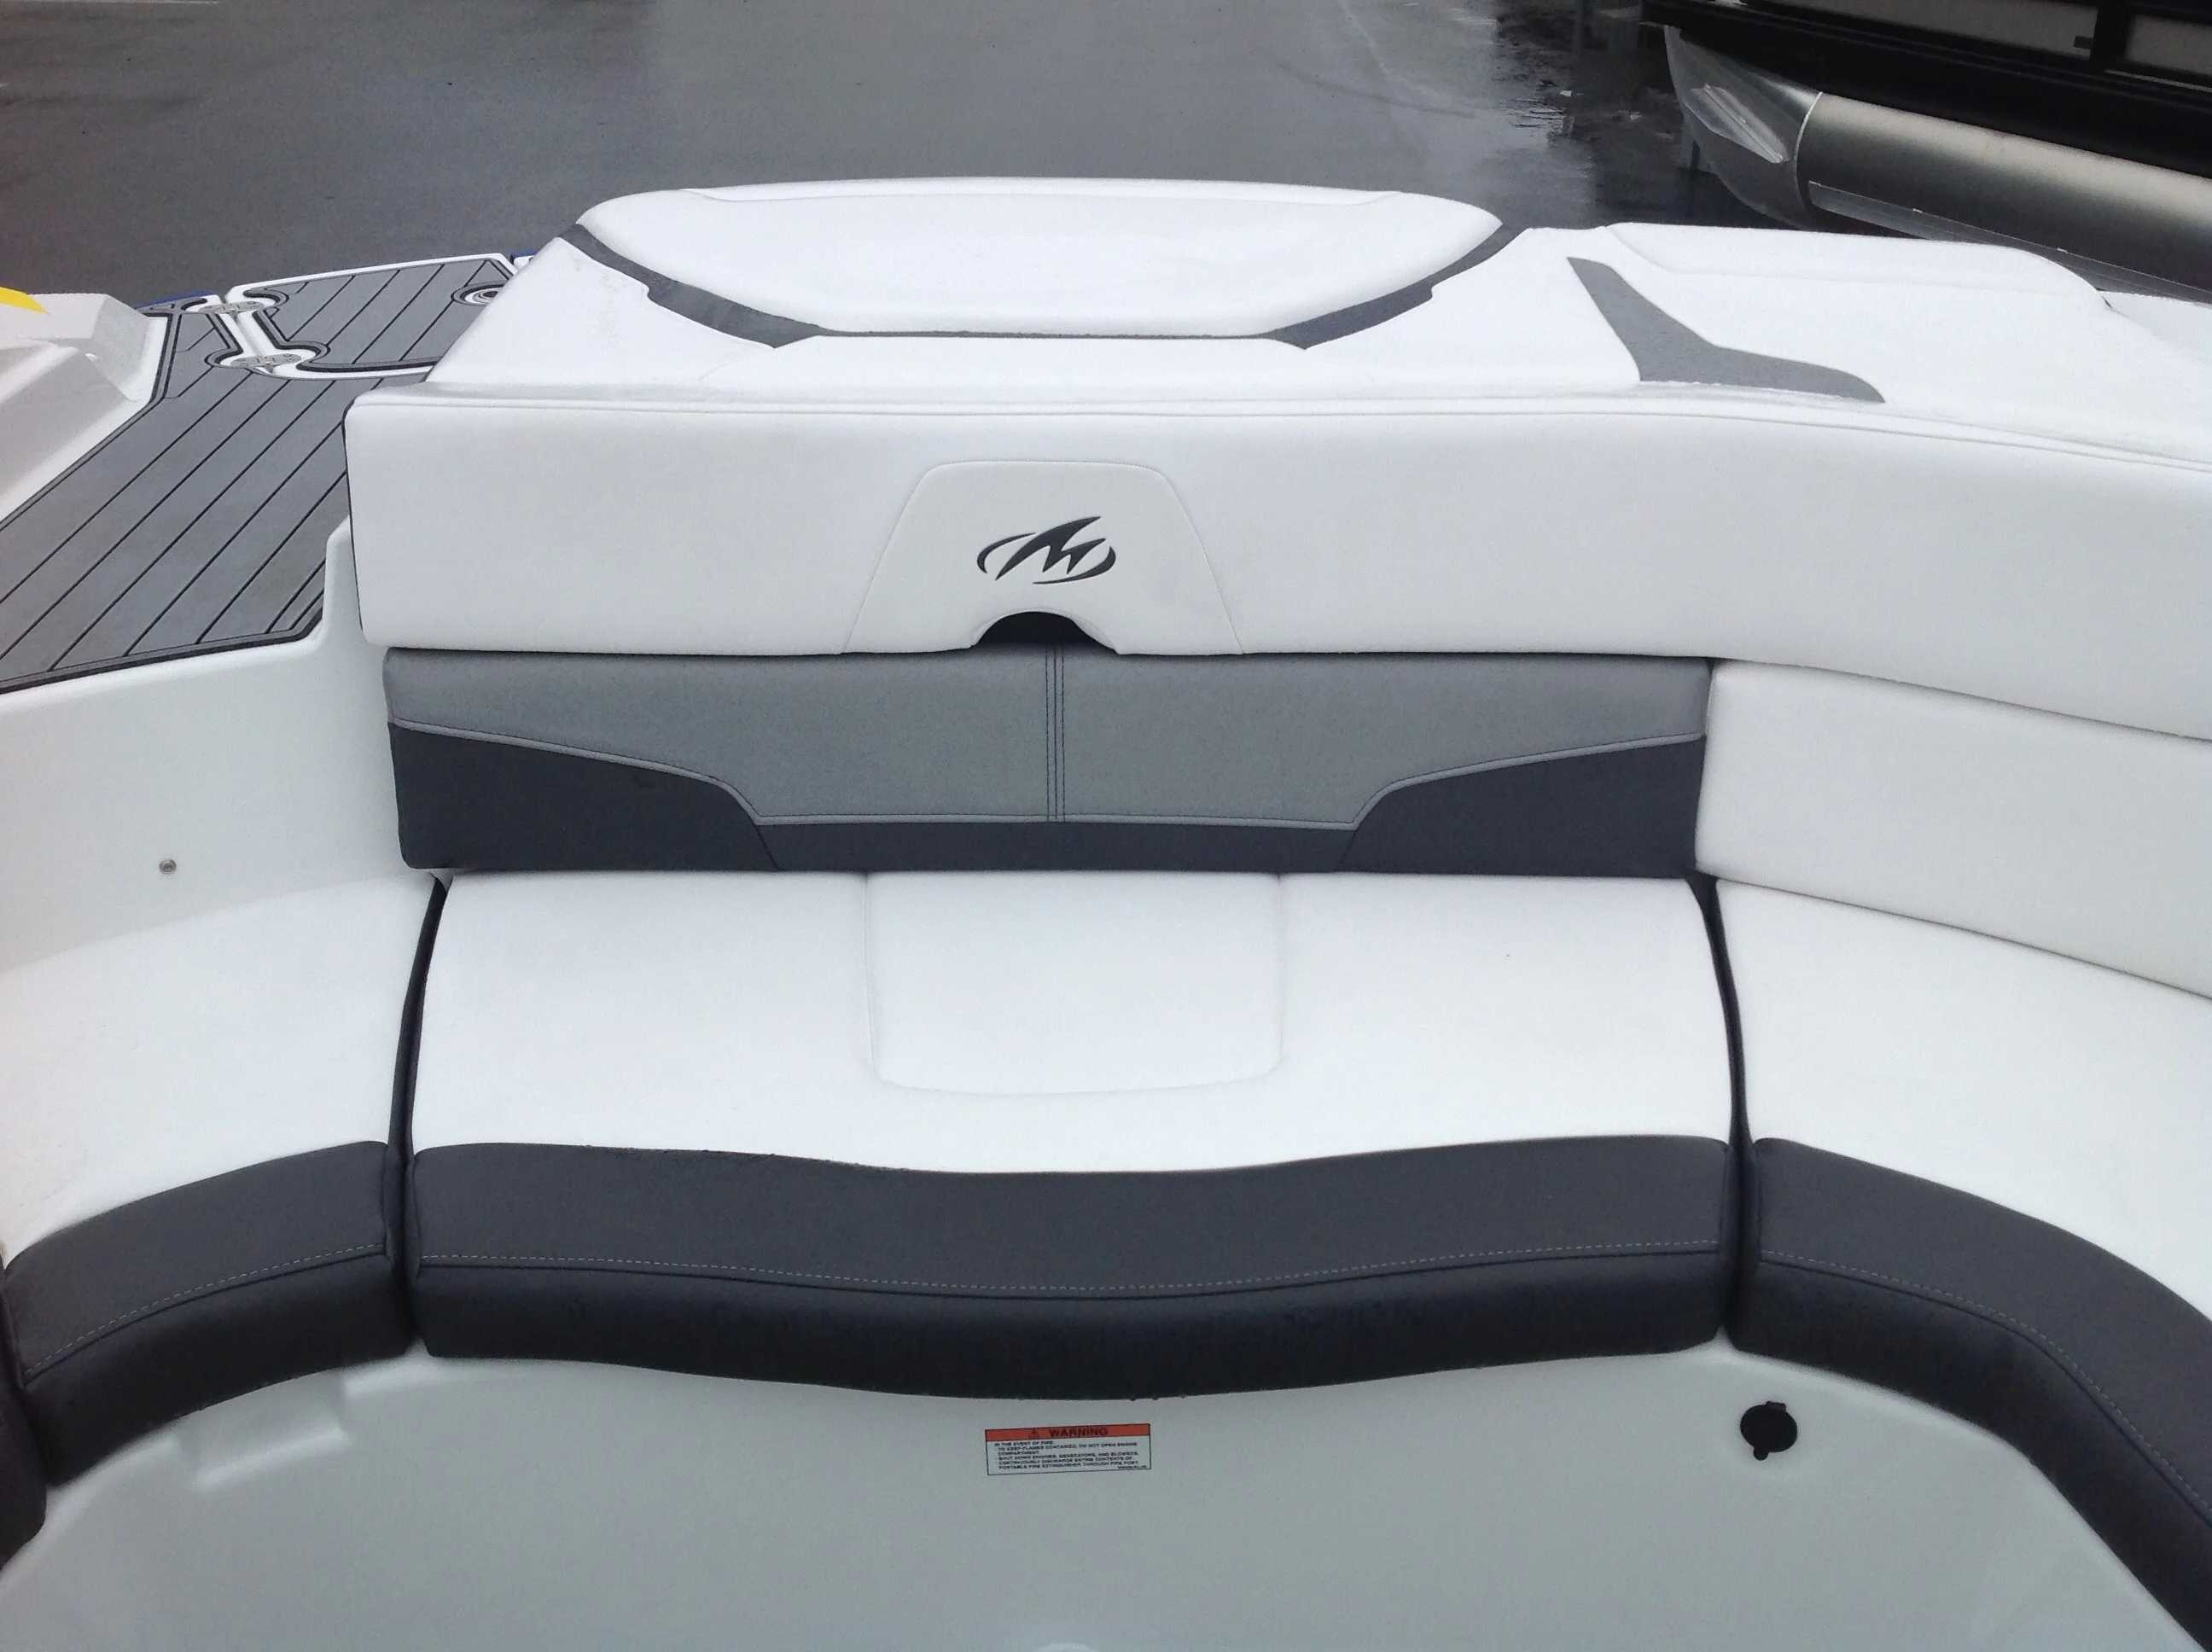 2021 Monterey boat for sale, model of the boat is 224FS & Image # 9 of 11